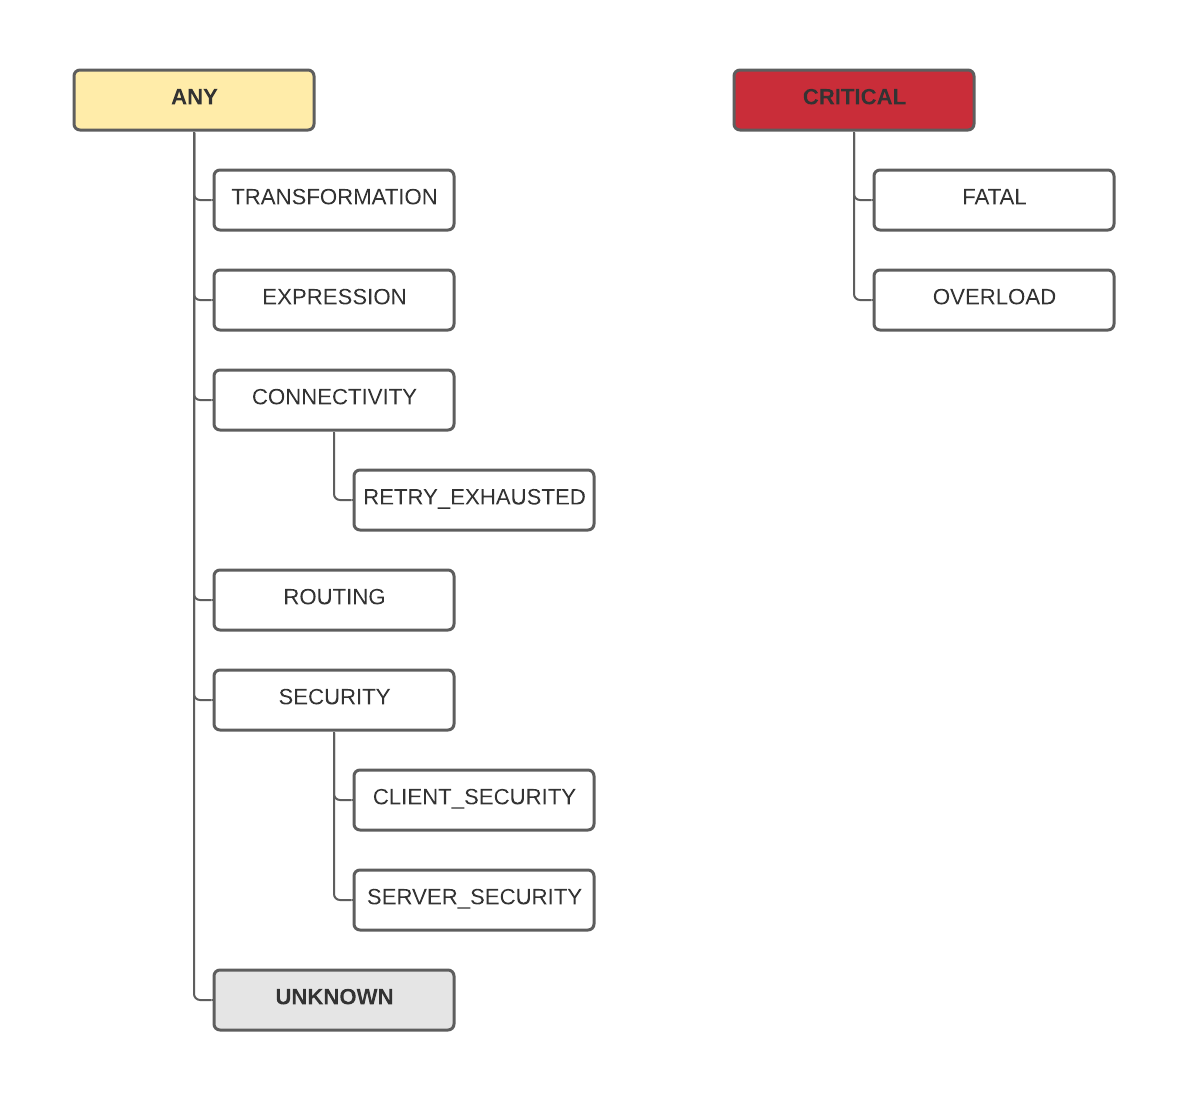 Error hierarchy - ANY and CRITICAL roots